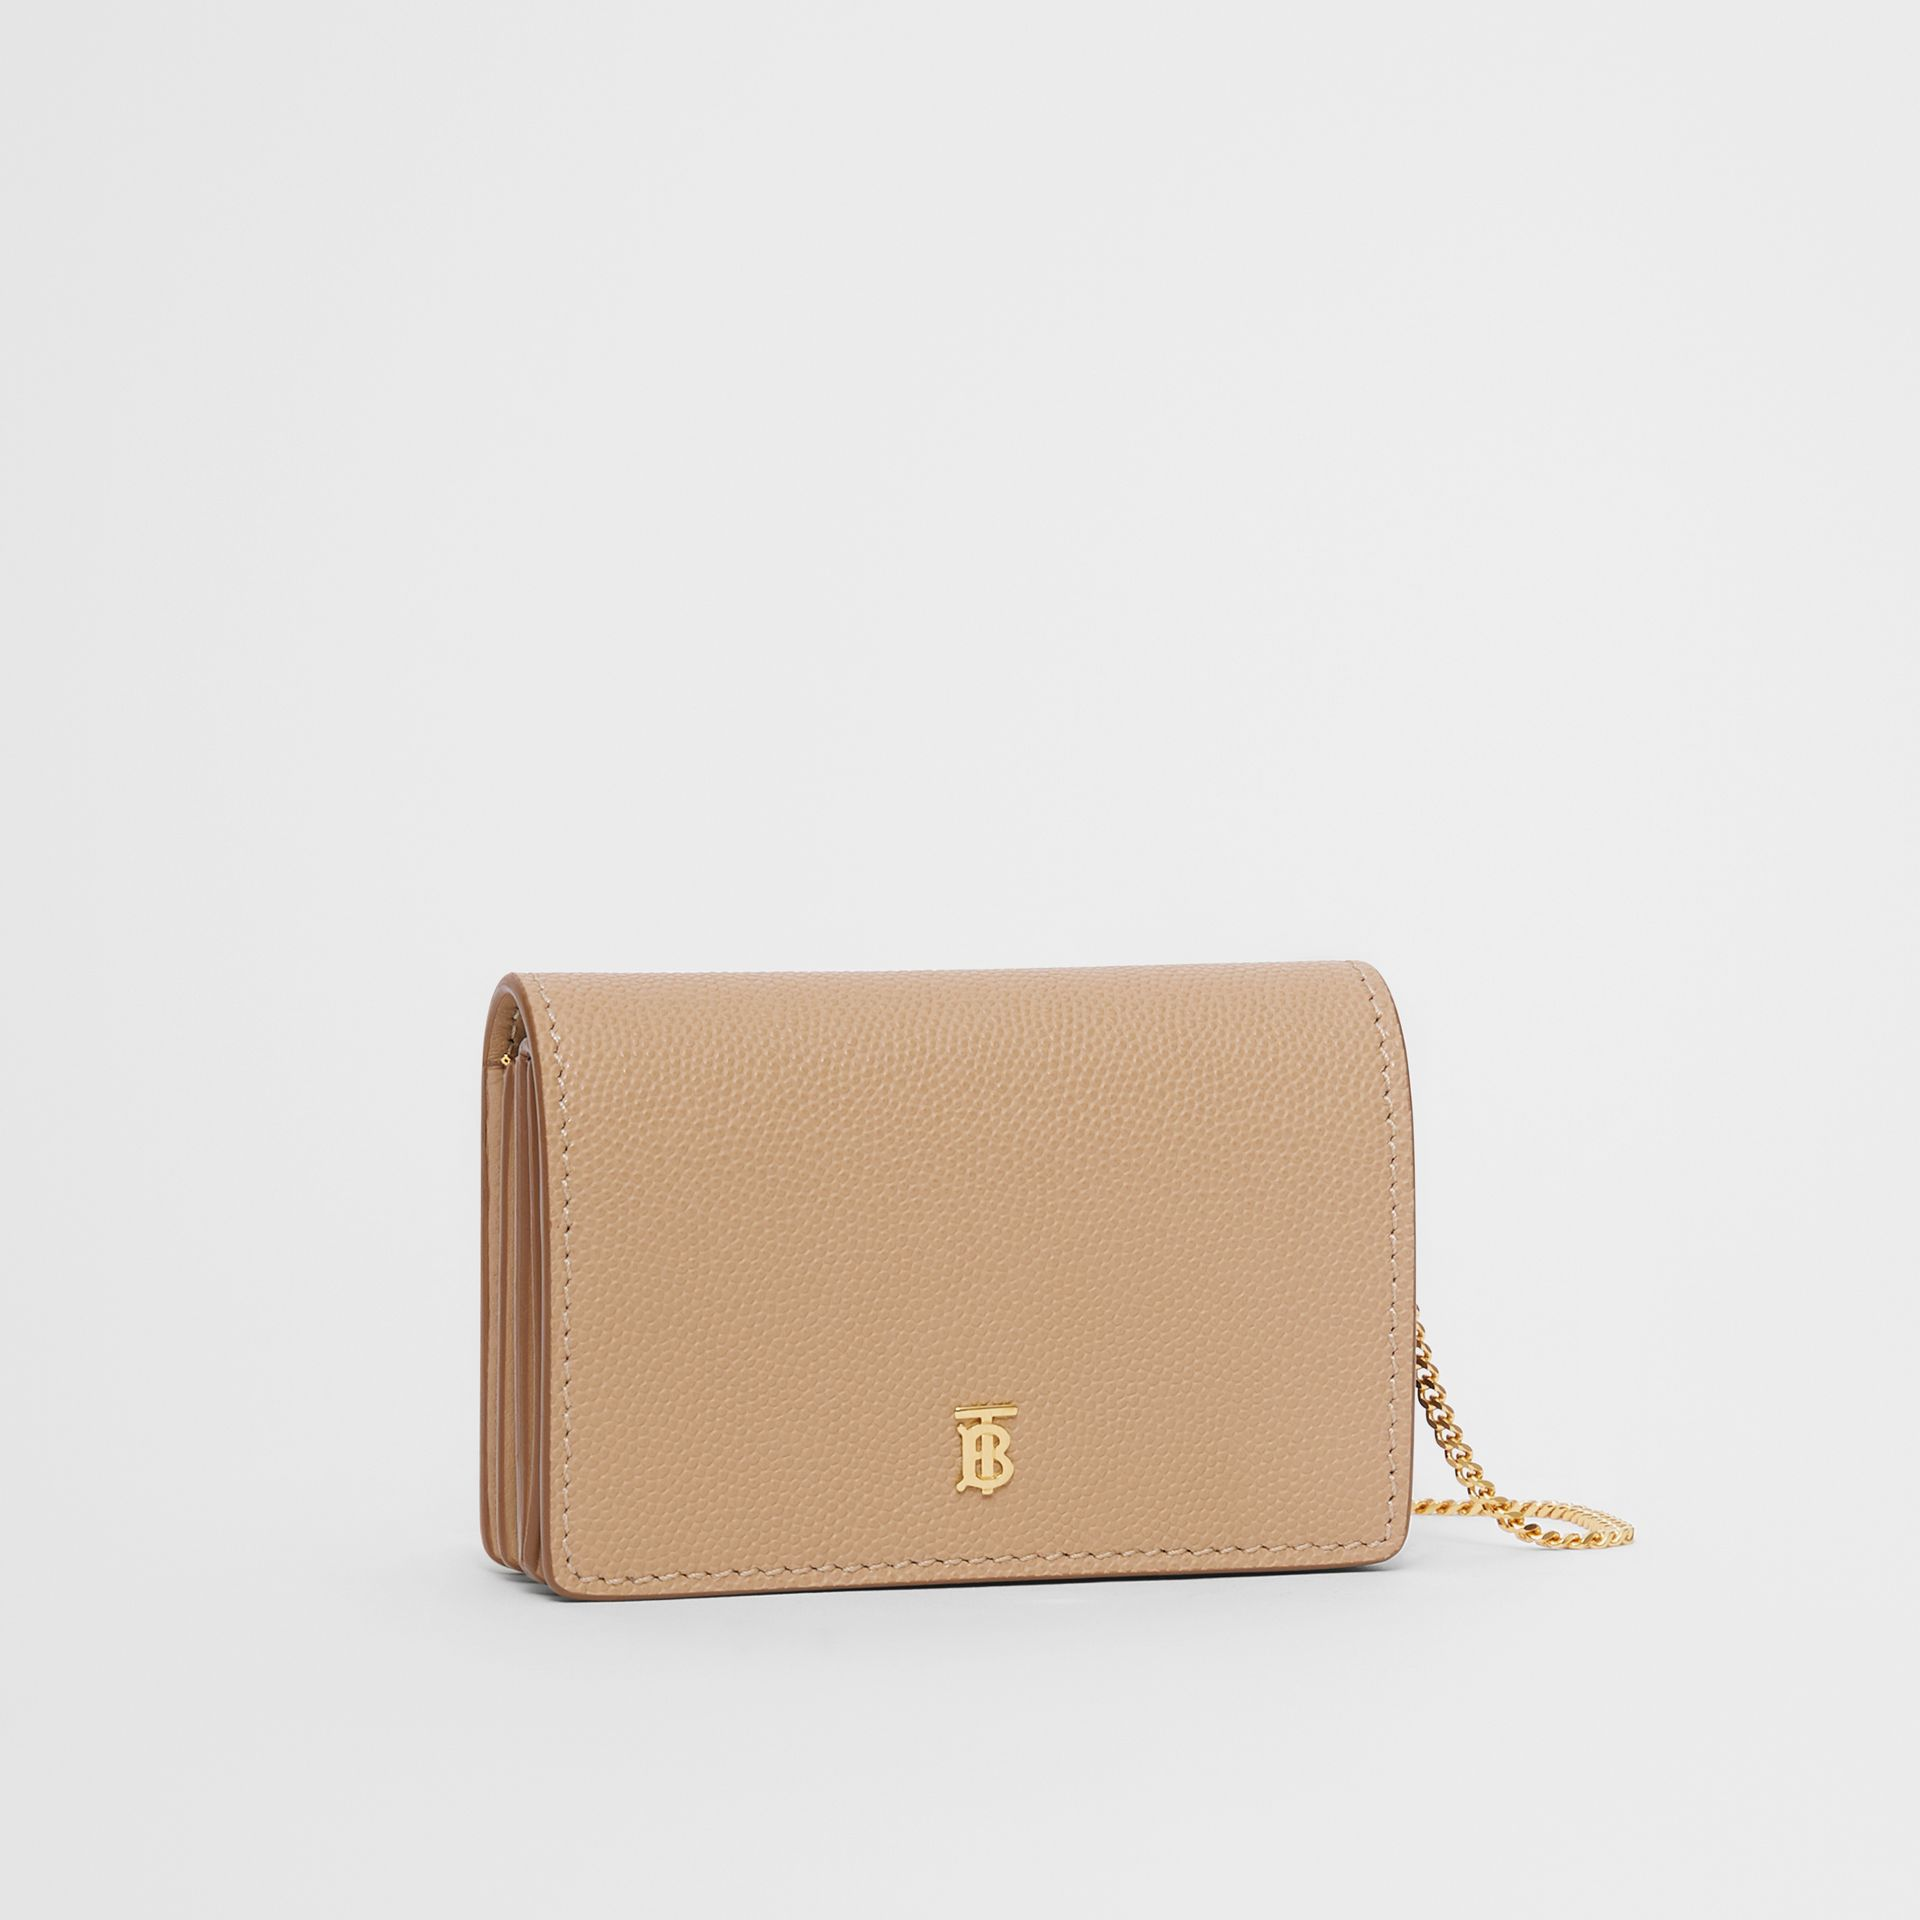 Grainy Leather Card Case with Detachable Strap in Archive Beige - Women | Burberry Australia - gallery image 4